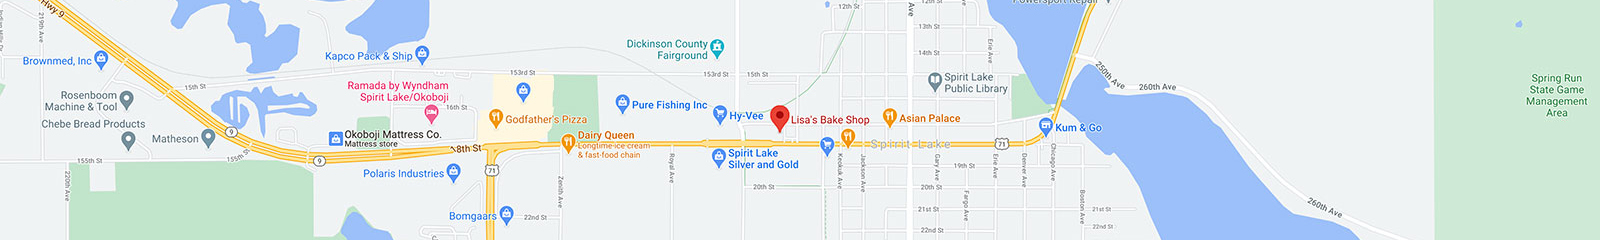 Lisa's Bake Shop Spirit Lake, Iowa